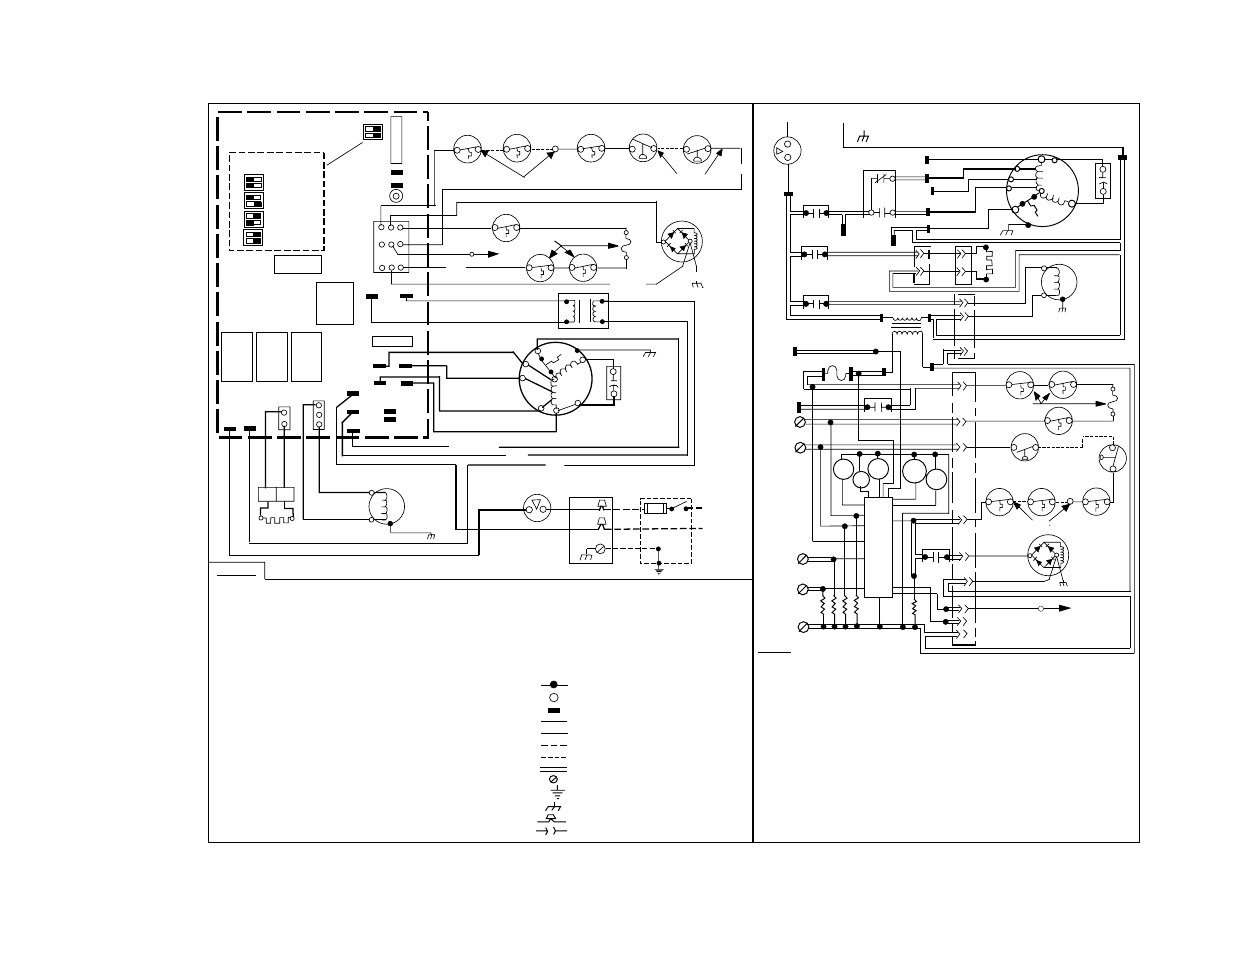 bryant 80 394u wiring diagram   29 wiring diagram images